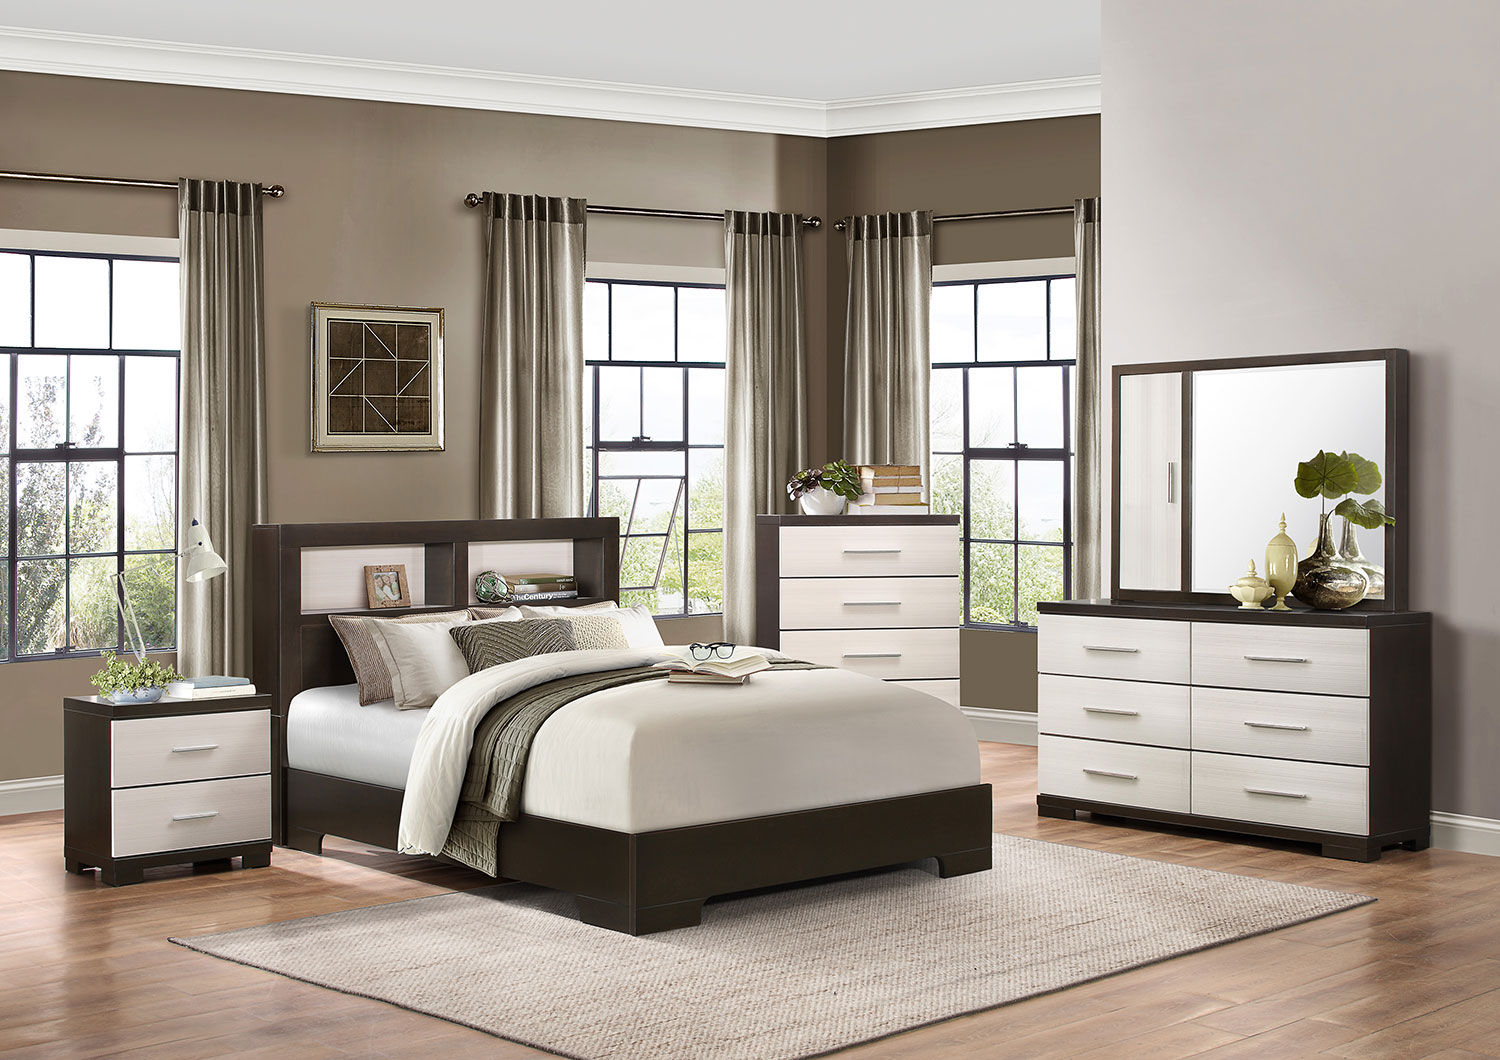 Homelegance Pell Low Profile Storage Bookcase Bedroom Set - Two-tone ...